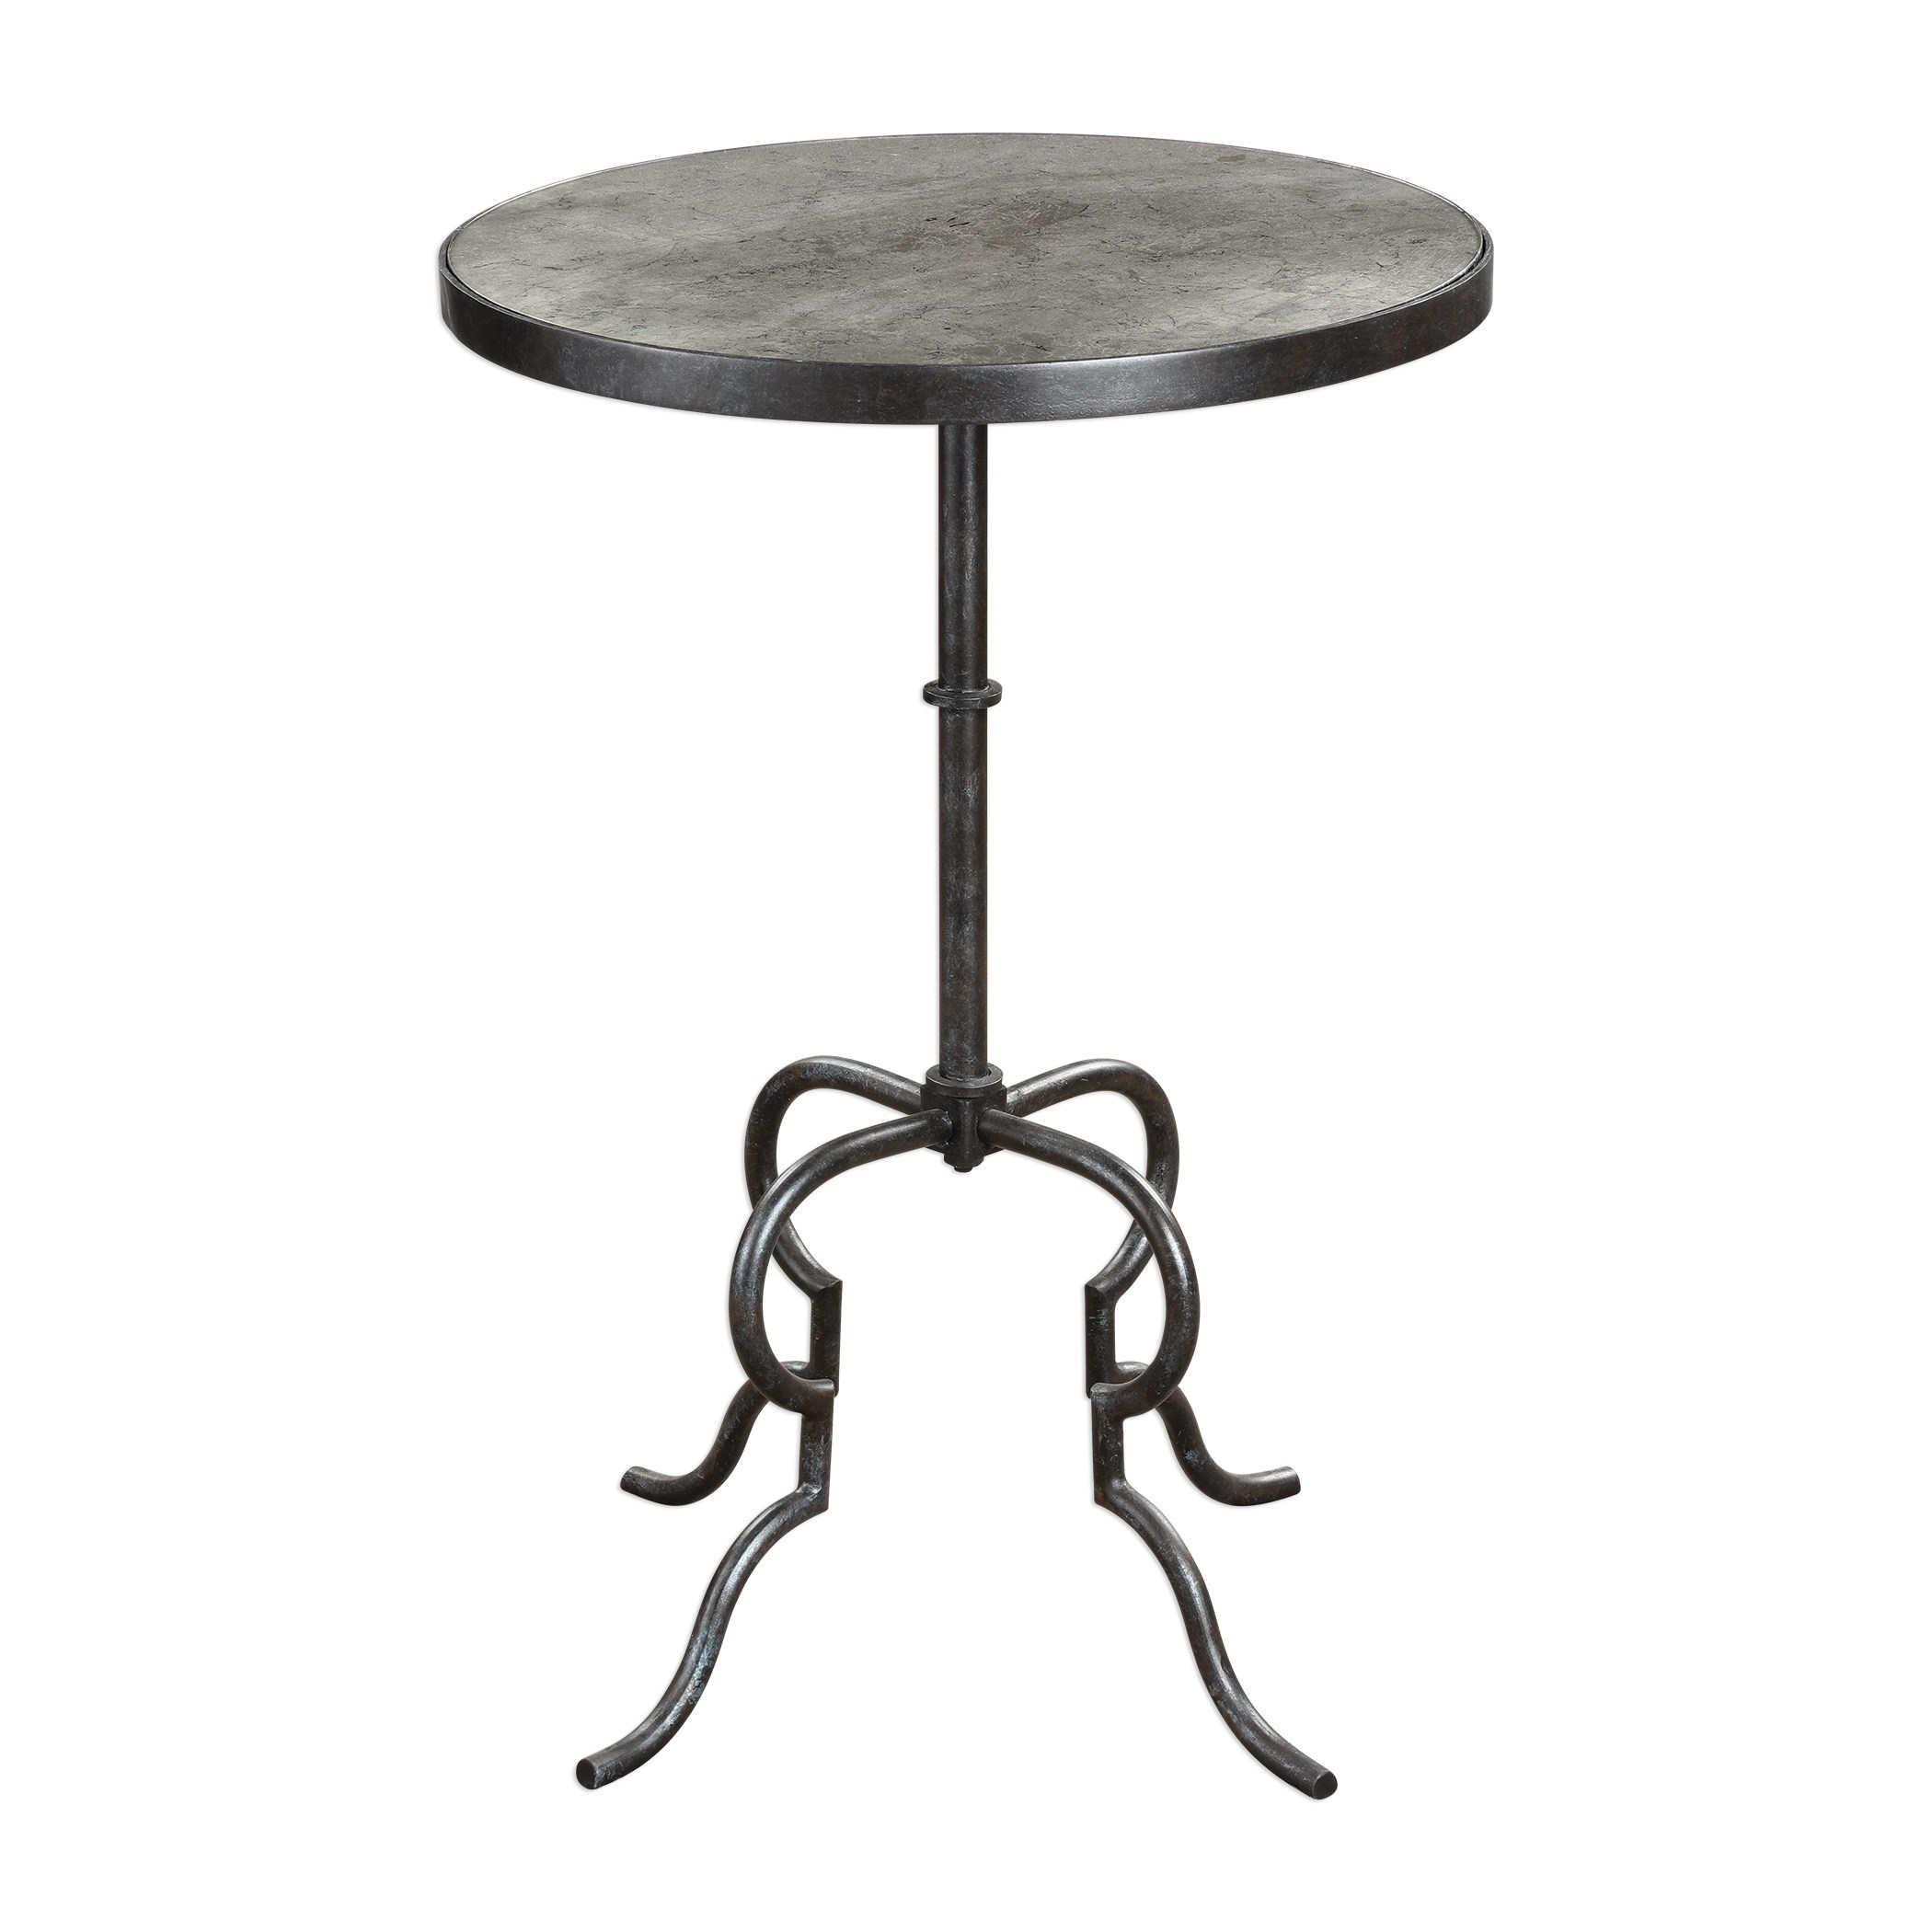 uttermost janine aged black and silver leaf accent table free shipping today pier buffet log small low coffee west elm outdoor white patio side narrow hallway iron mudroom storage